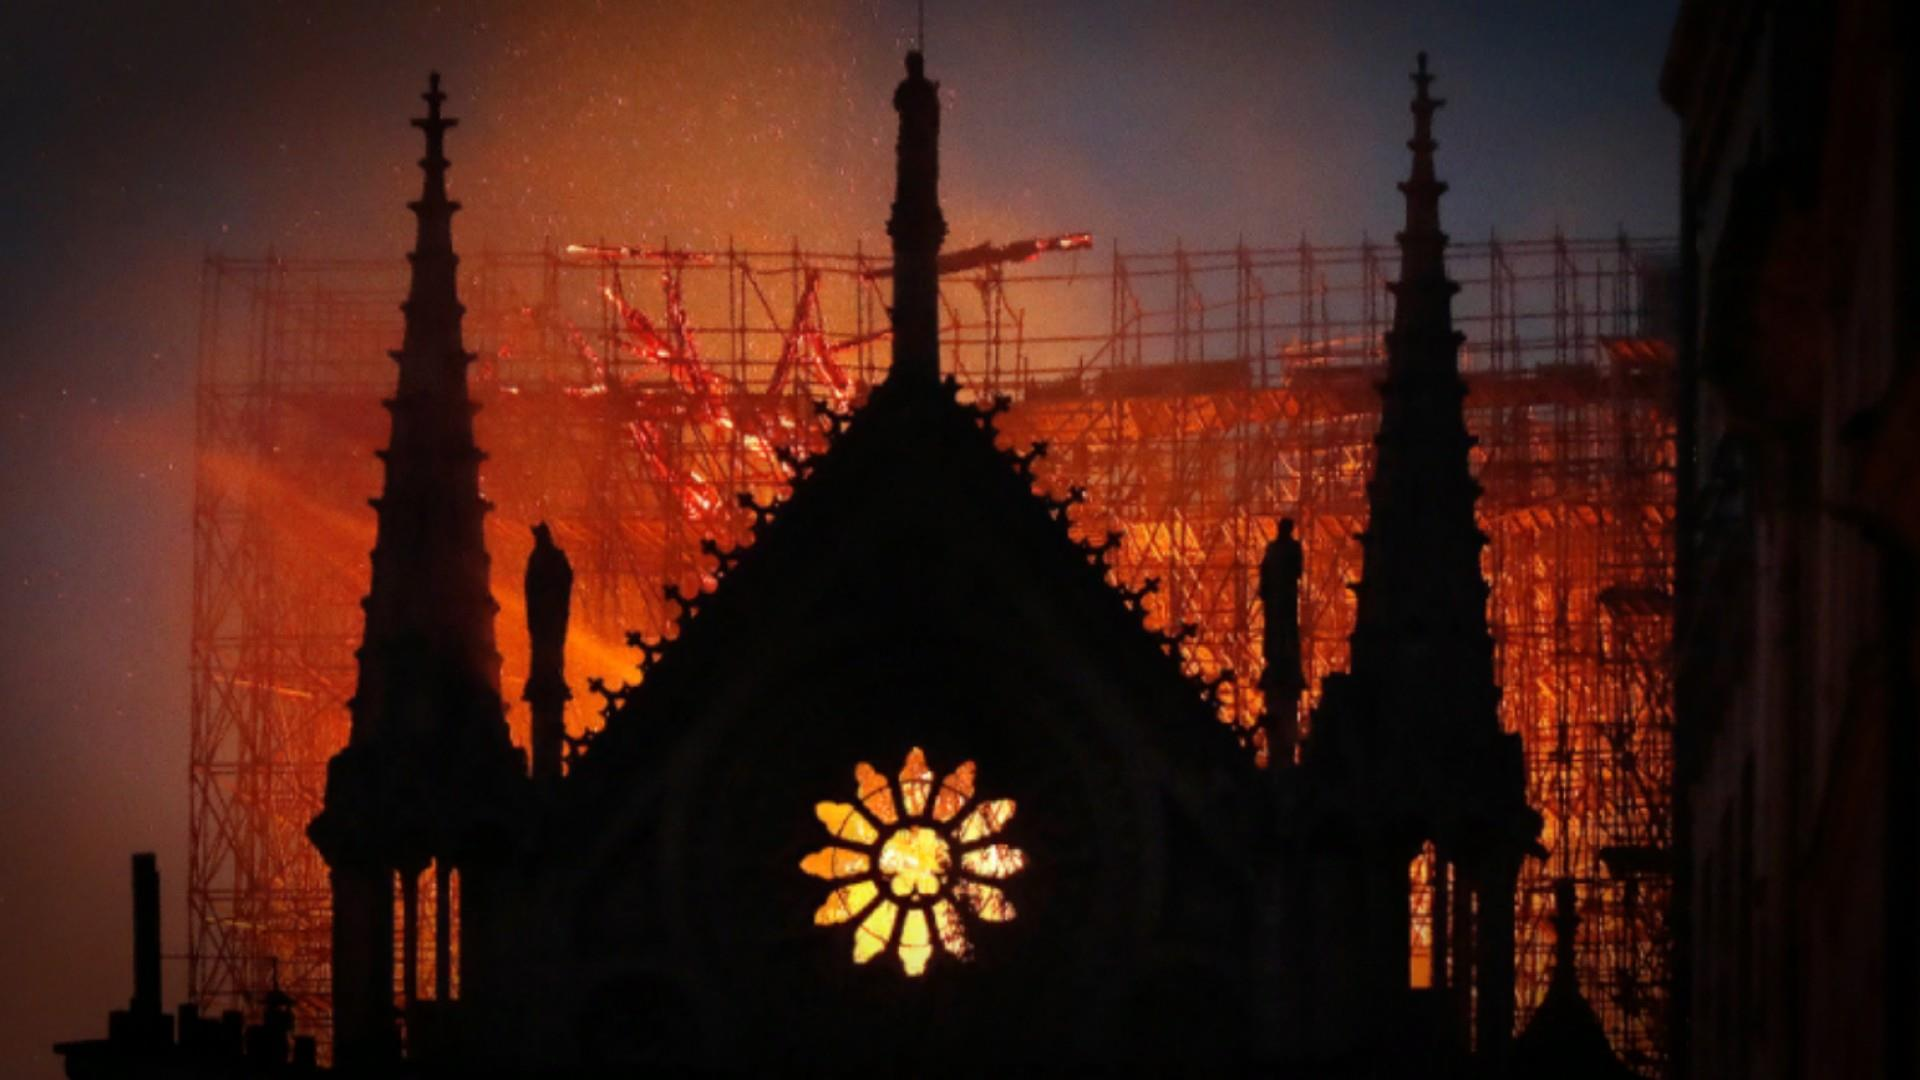 French officials pledging to rebuild Notre Dame after devastating fire